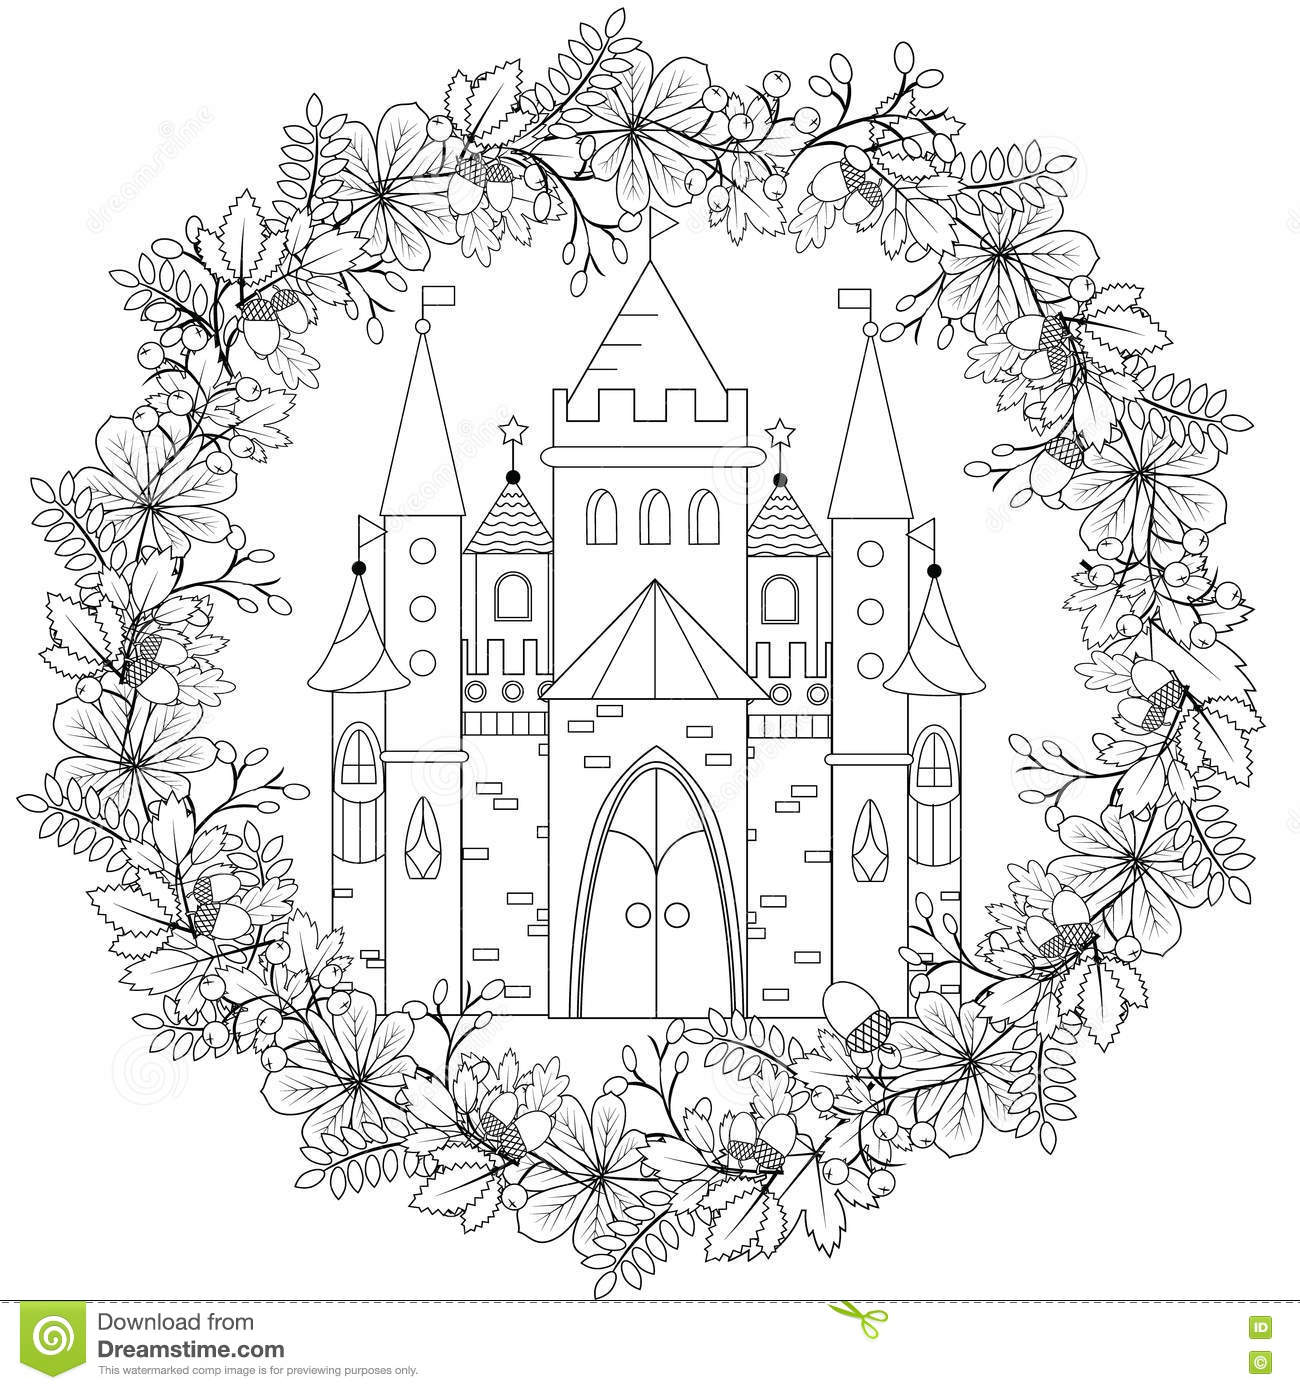 Relaxing Coloring Page With Fairy Castle In Forest Wreath